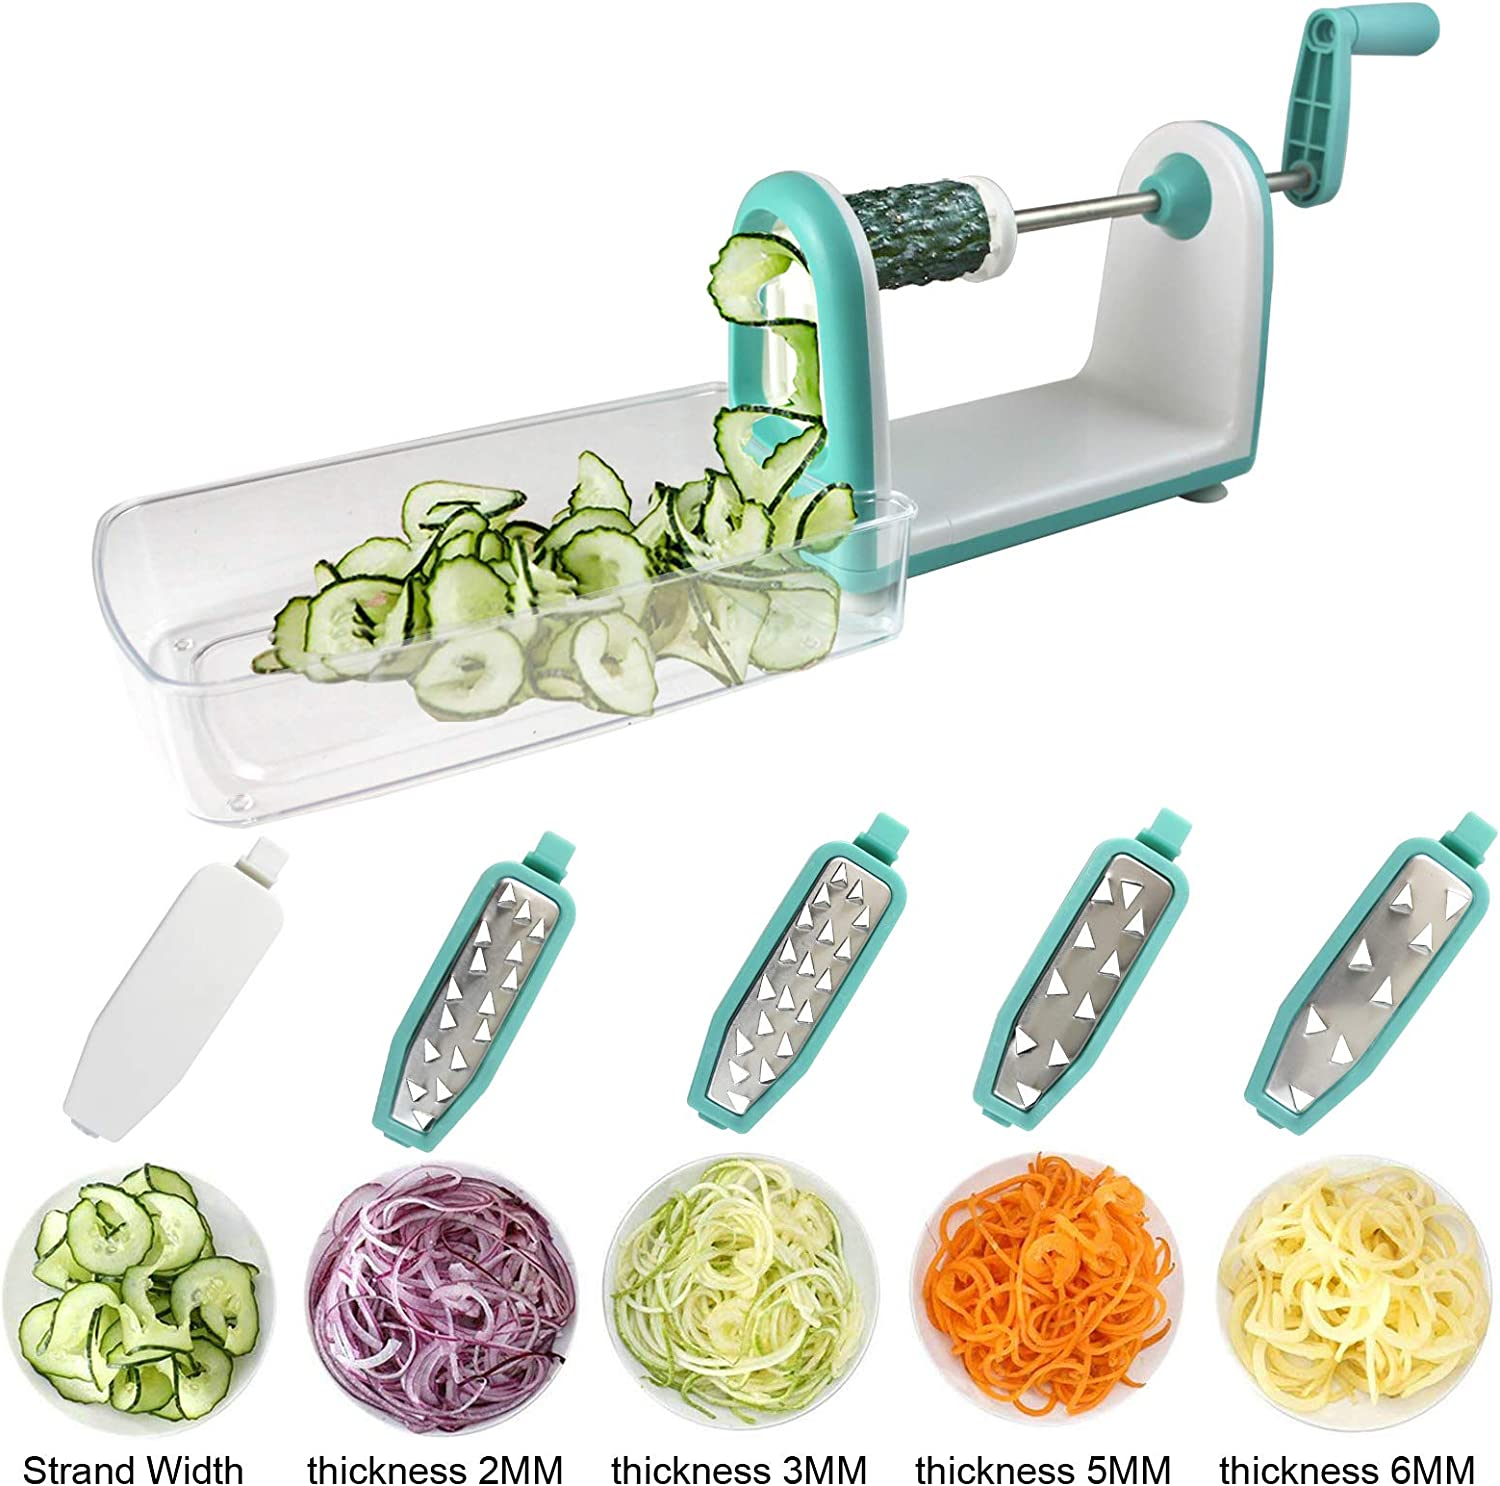 Shareway 5-Blade Spiralizer Perfect for Zucchini Spaghetti Maker/Raw Food/Vegan/Paleo/Gluten-Free/Low-Carb etc with Container and Blade Caddy